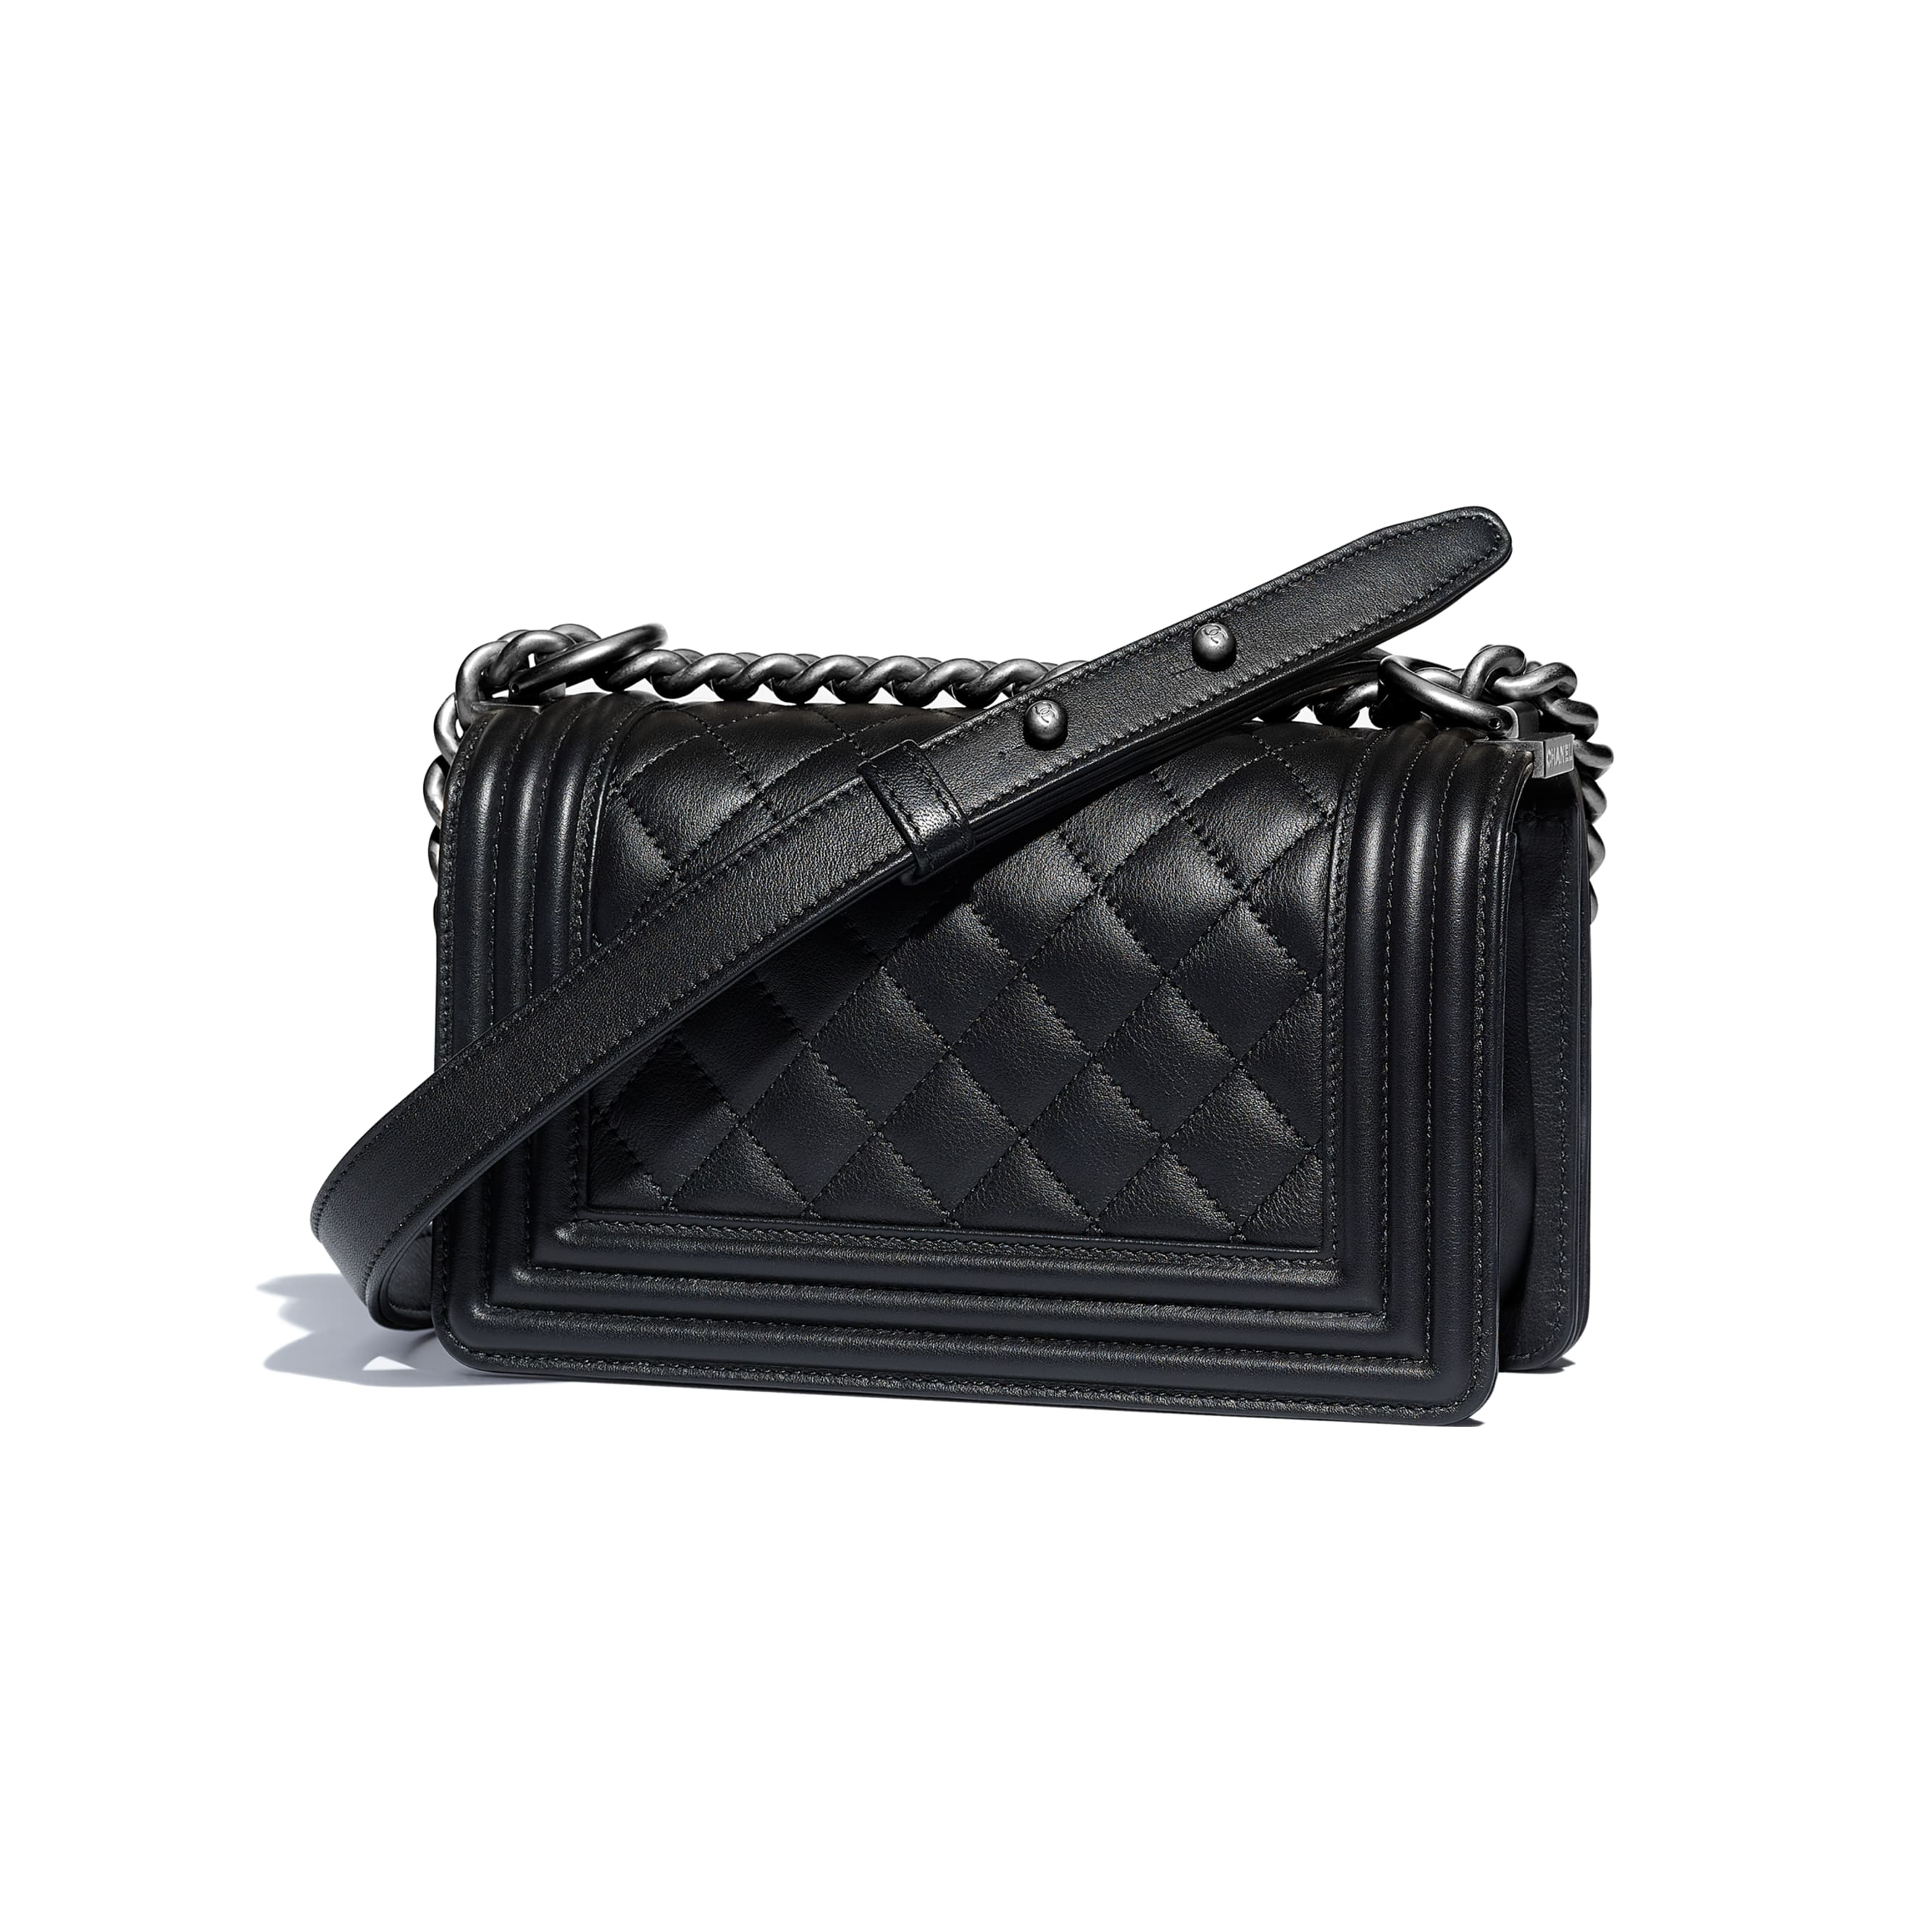 Small BOY CHANEL Handbag - Black - Calfskin & Ruthenium-Finish Metal - CHANEL - Alternative view - see standard sized version